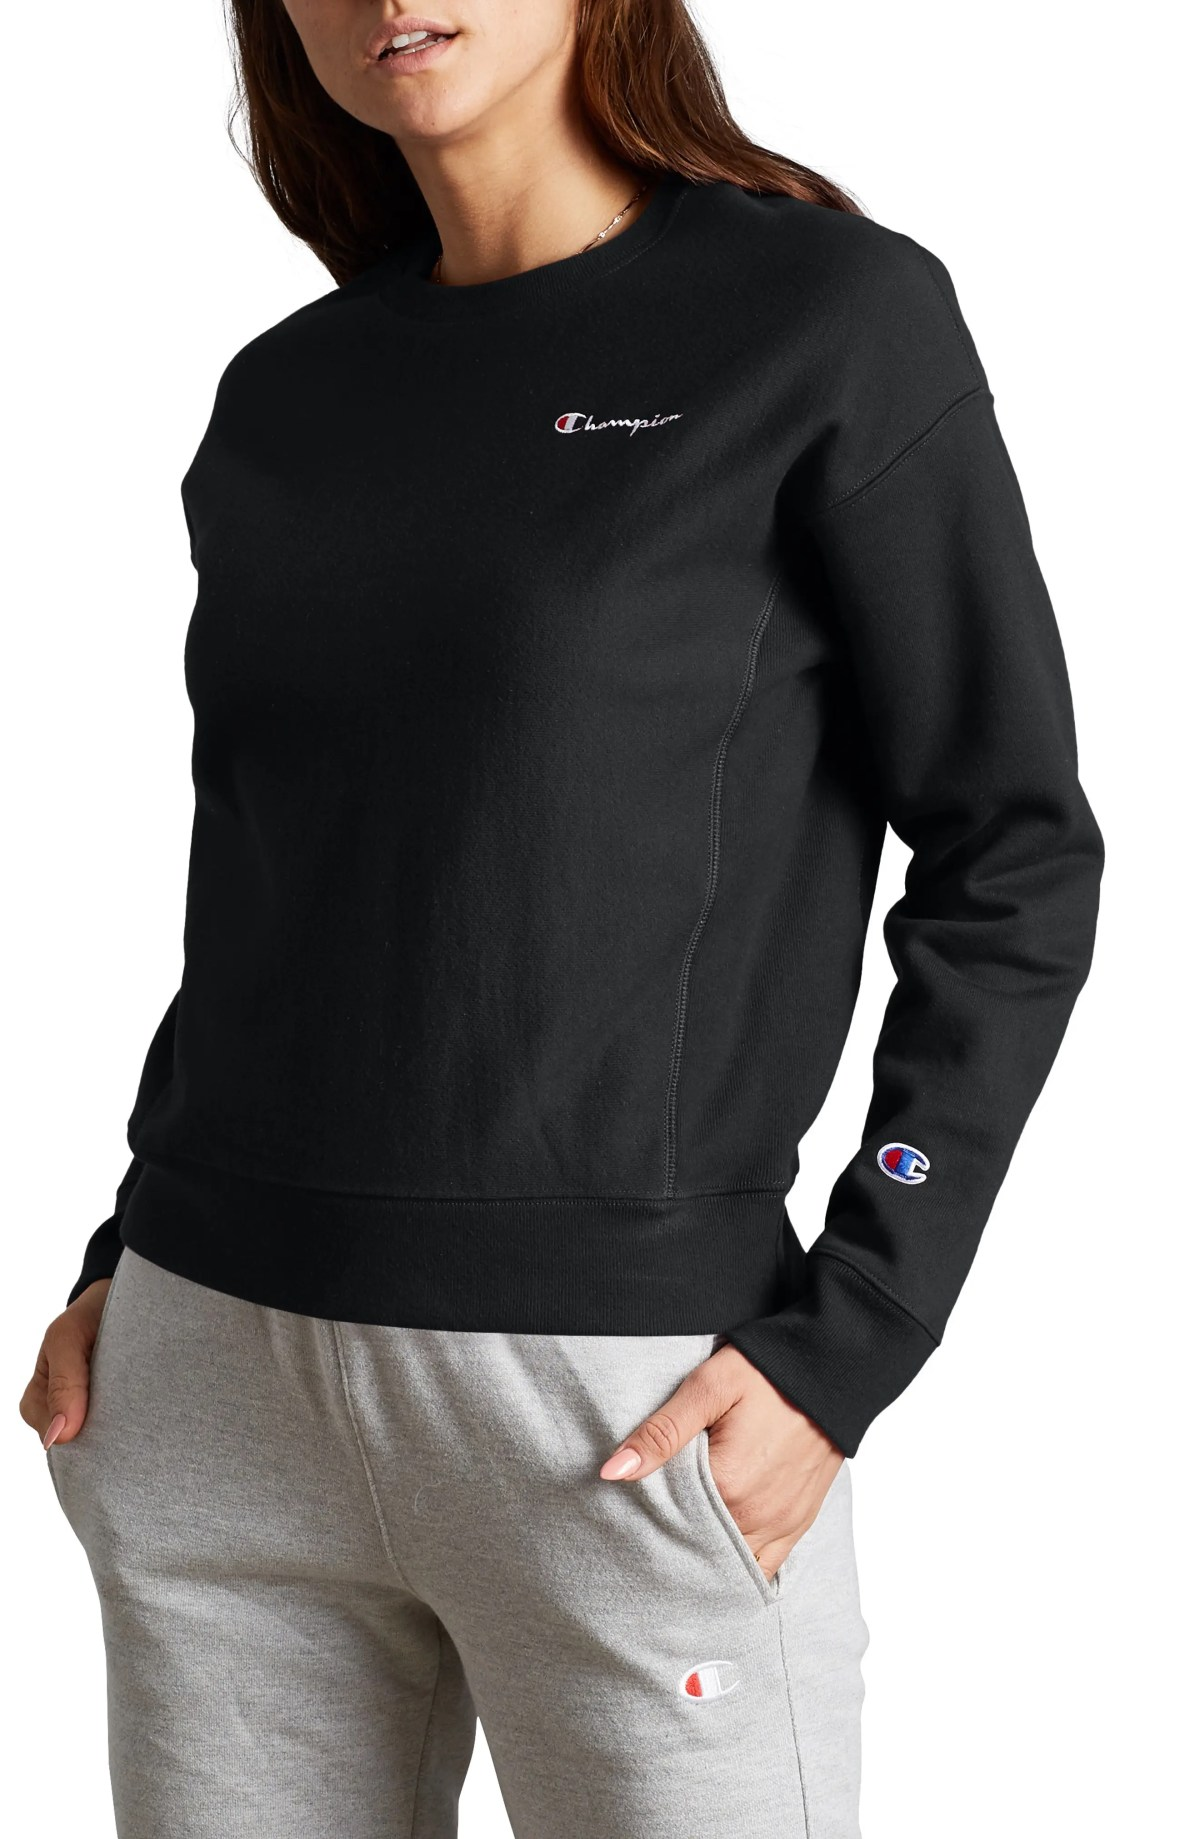 CHAMPION Reverse Weave<sup>®</sup> Fleece Sweatshirt, Main, color, BLACK